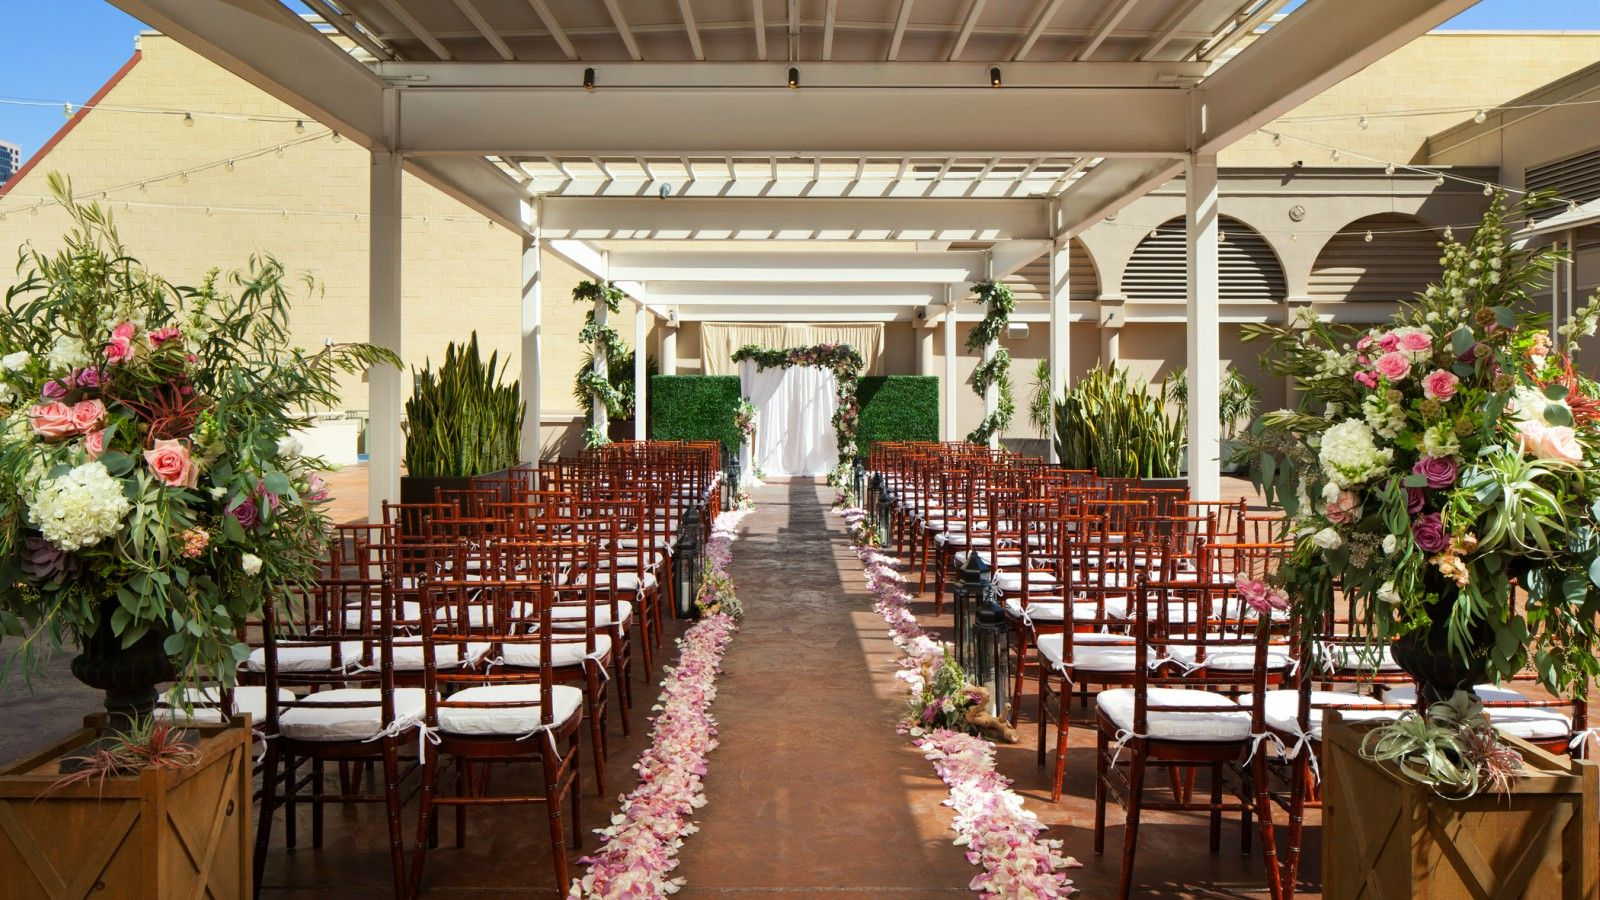 San diego wedding venue the westin gaslamp quarter hotel san diego weddings garden terrace junglespirit